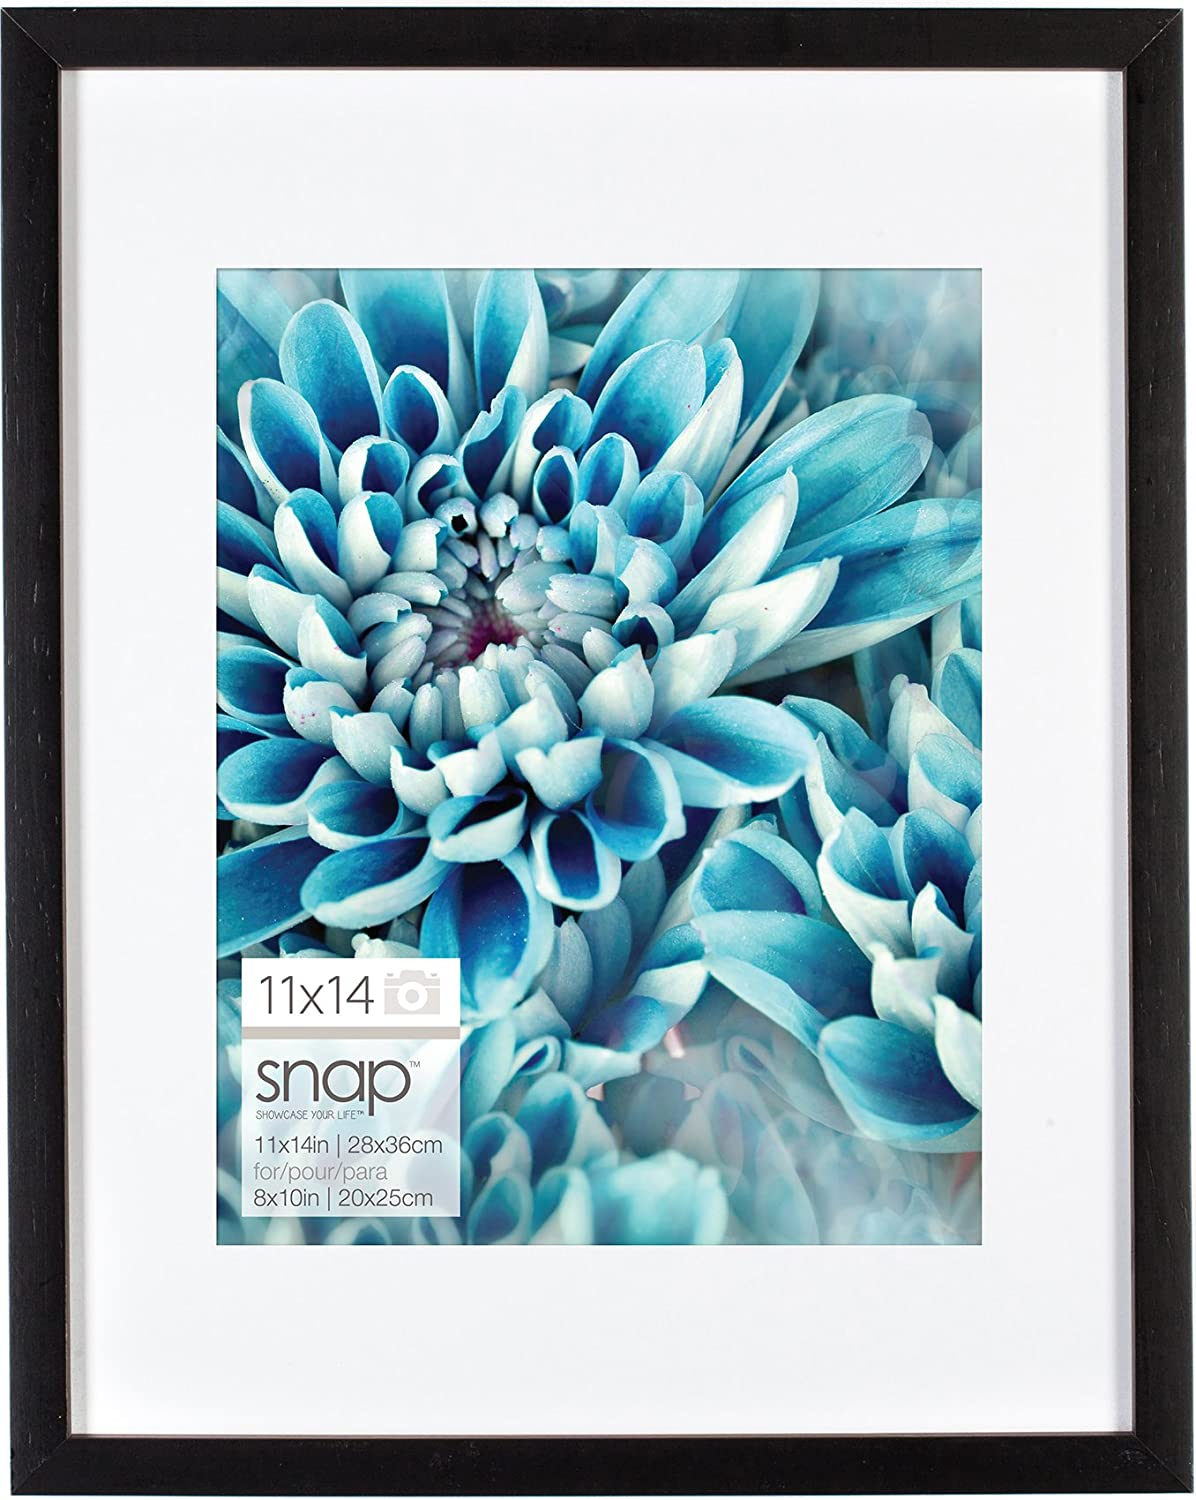 Amazon.com: Snap 11x14 Black Wood Frame with Single White Mat For ...